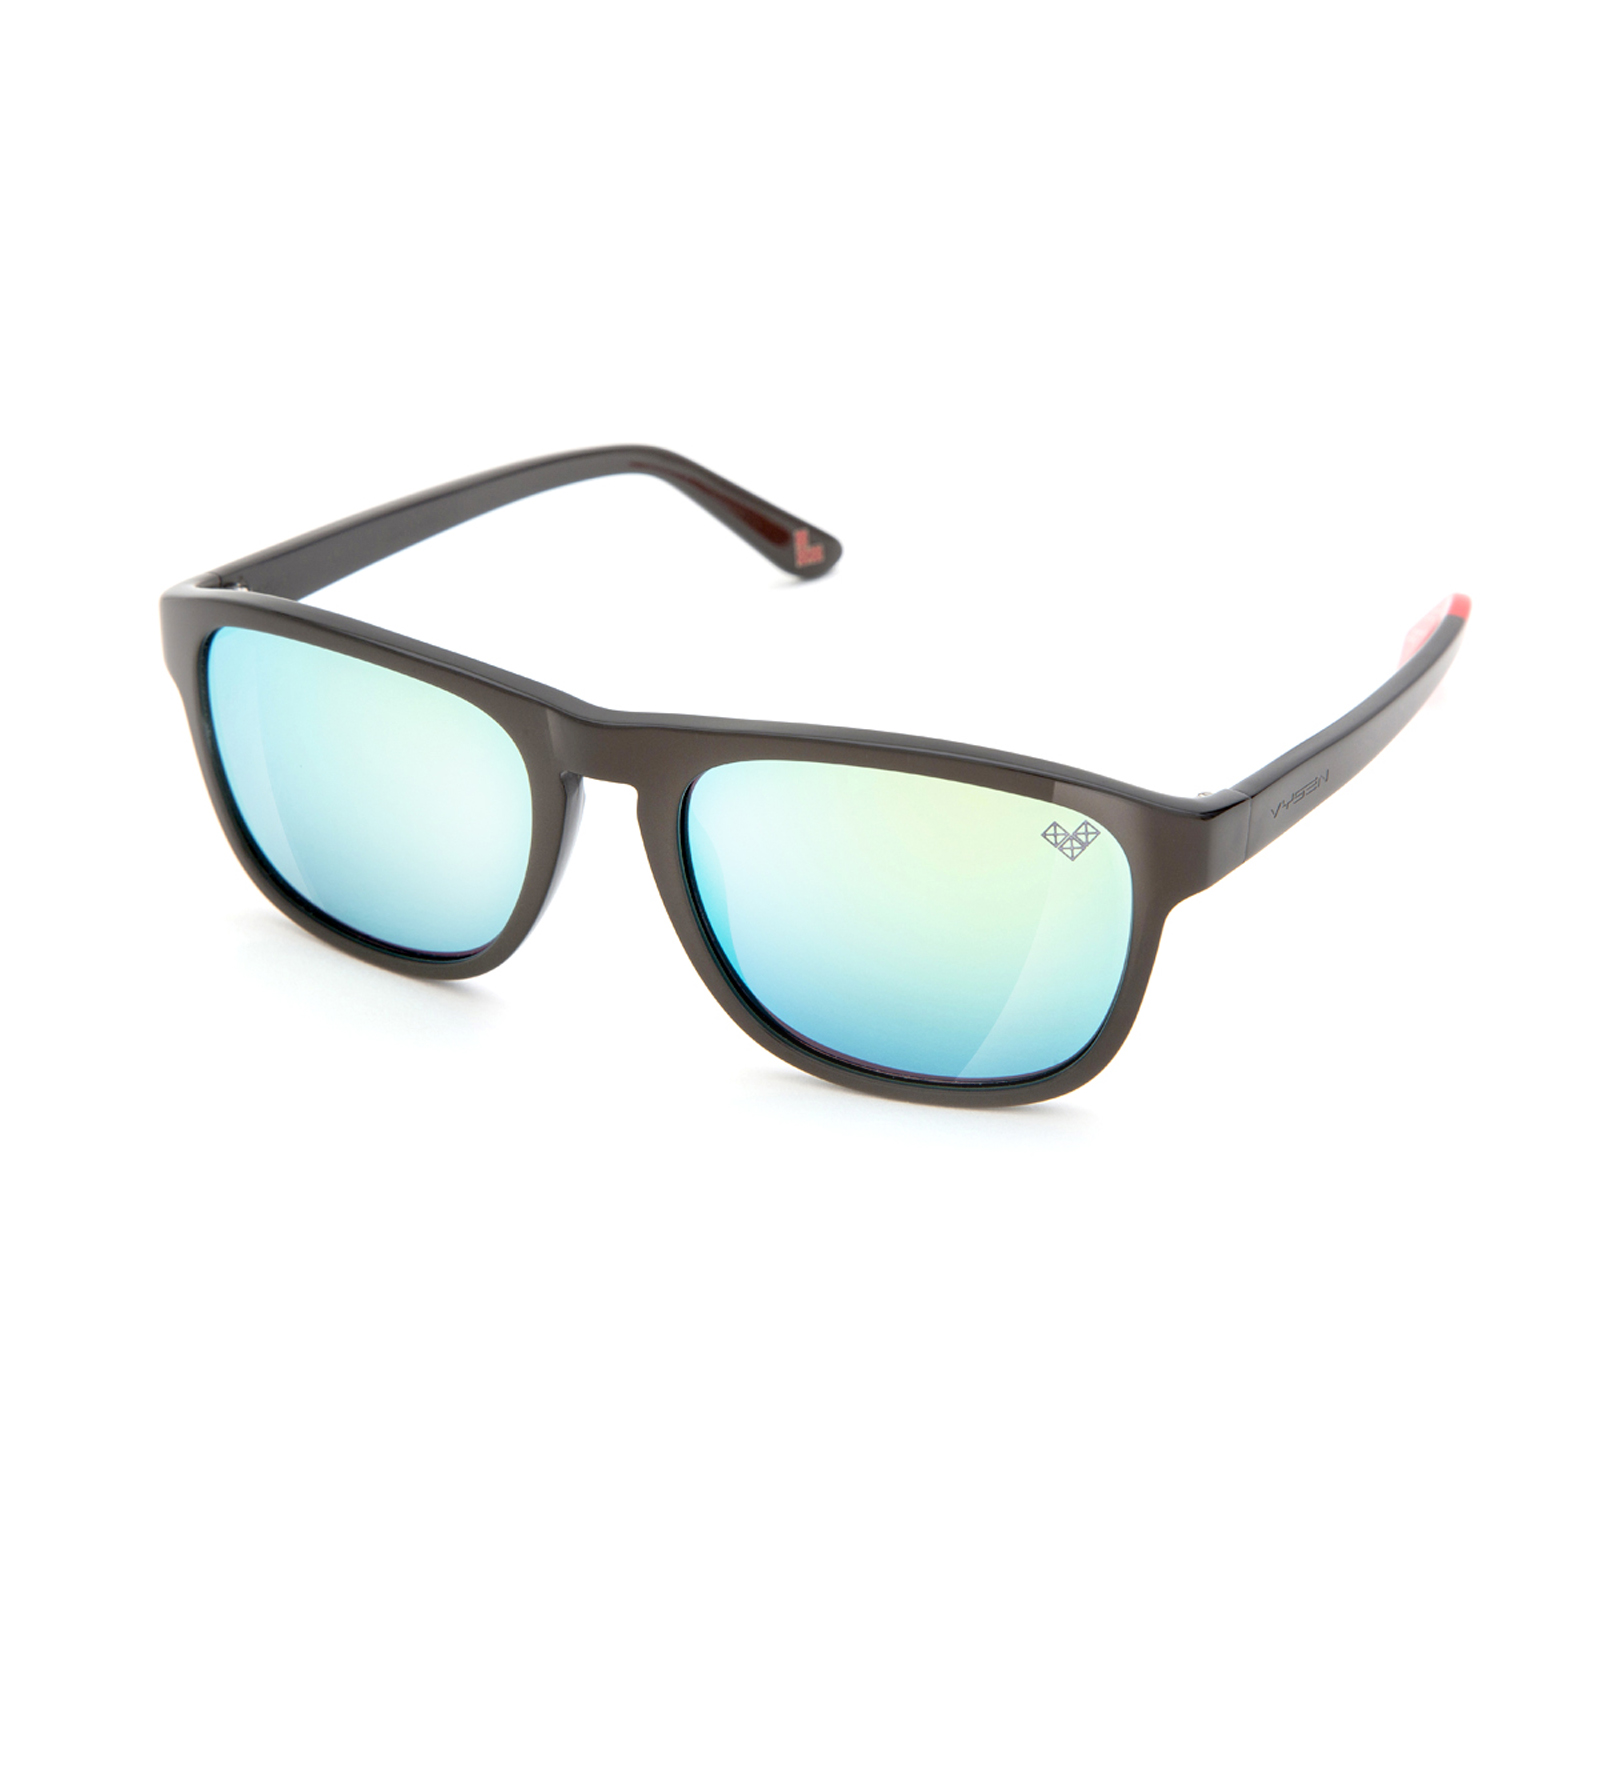 MAYDAY-Md2B-P with Blue Mirror Coating Lenses